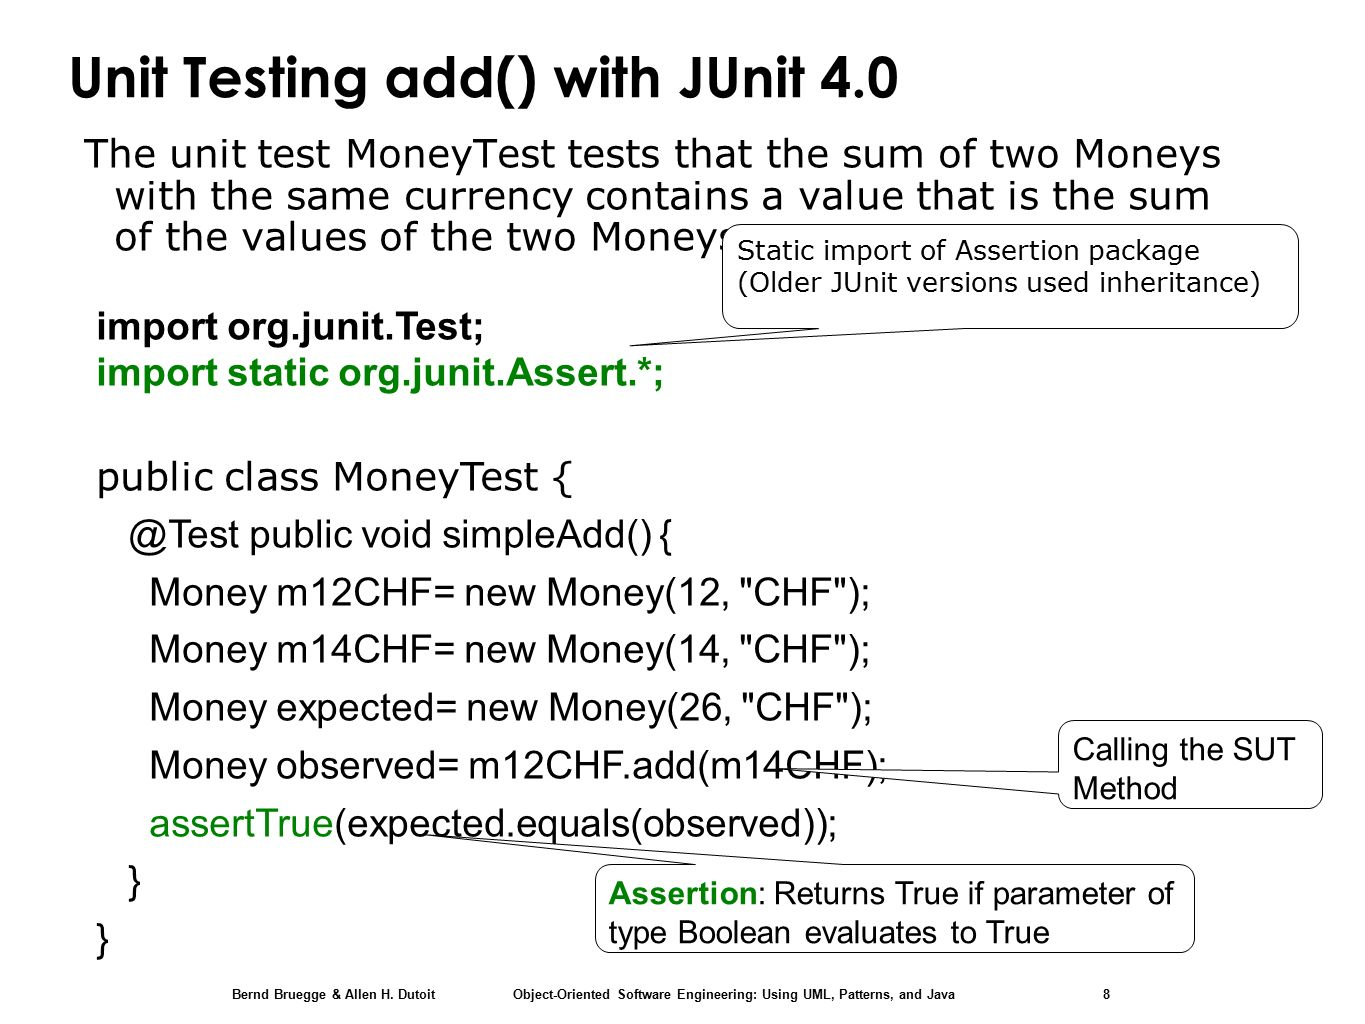 Chapter 11, Testing: Unit Testing with JUnit 4 - ppt download